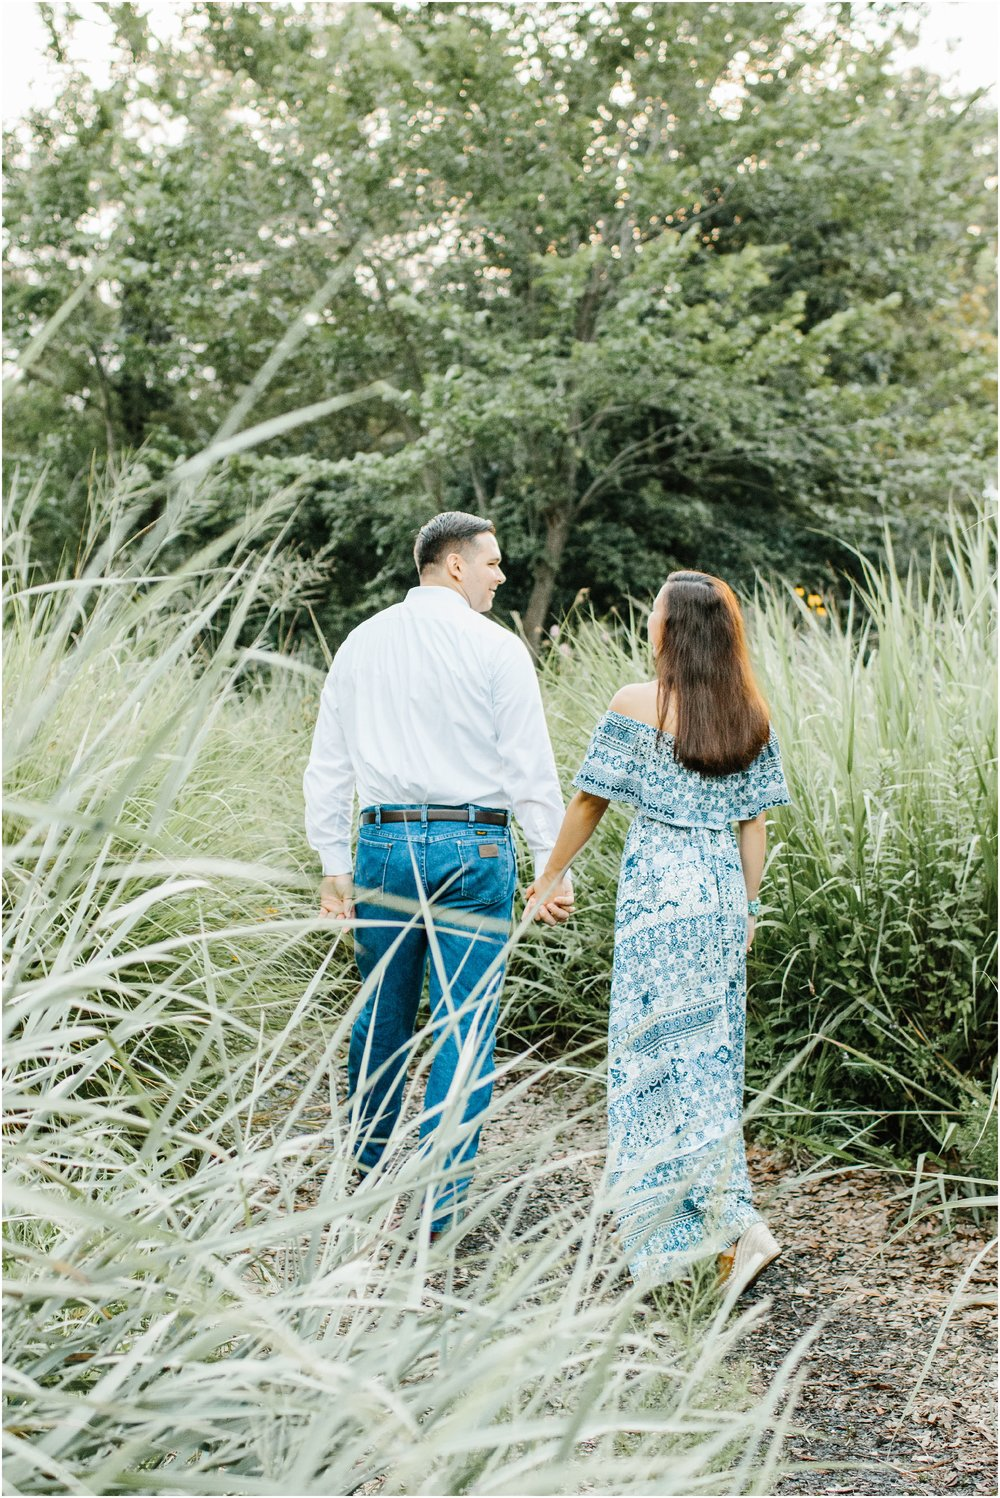 houston_engagement_session_0556.jpg